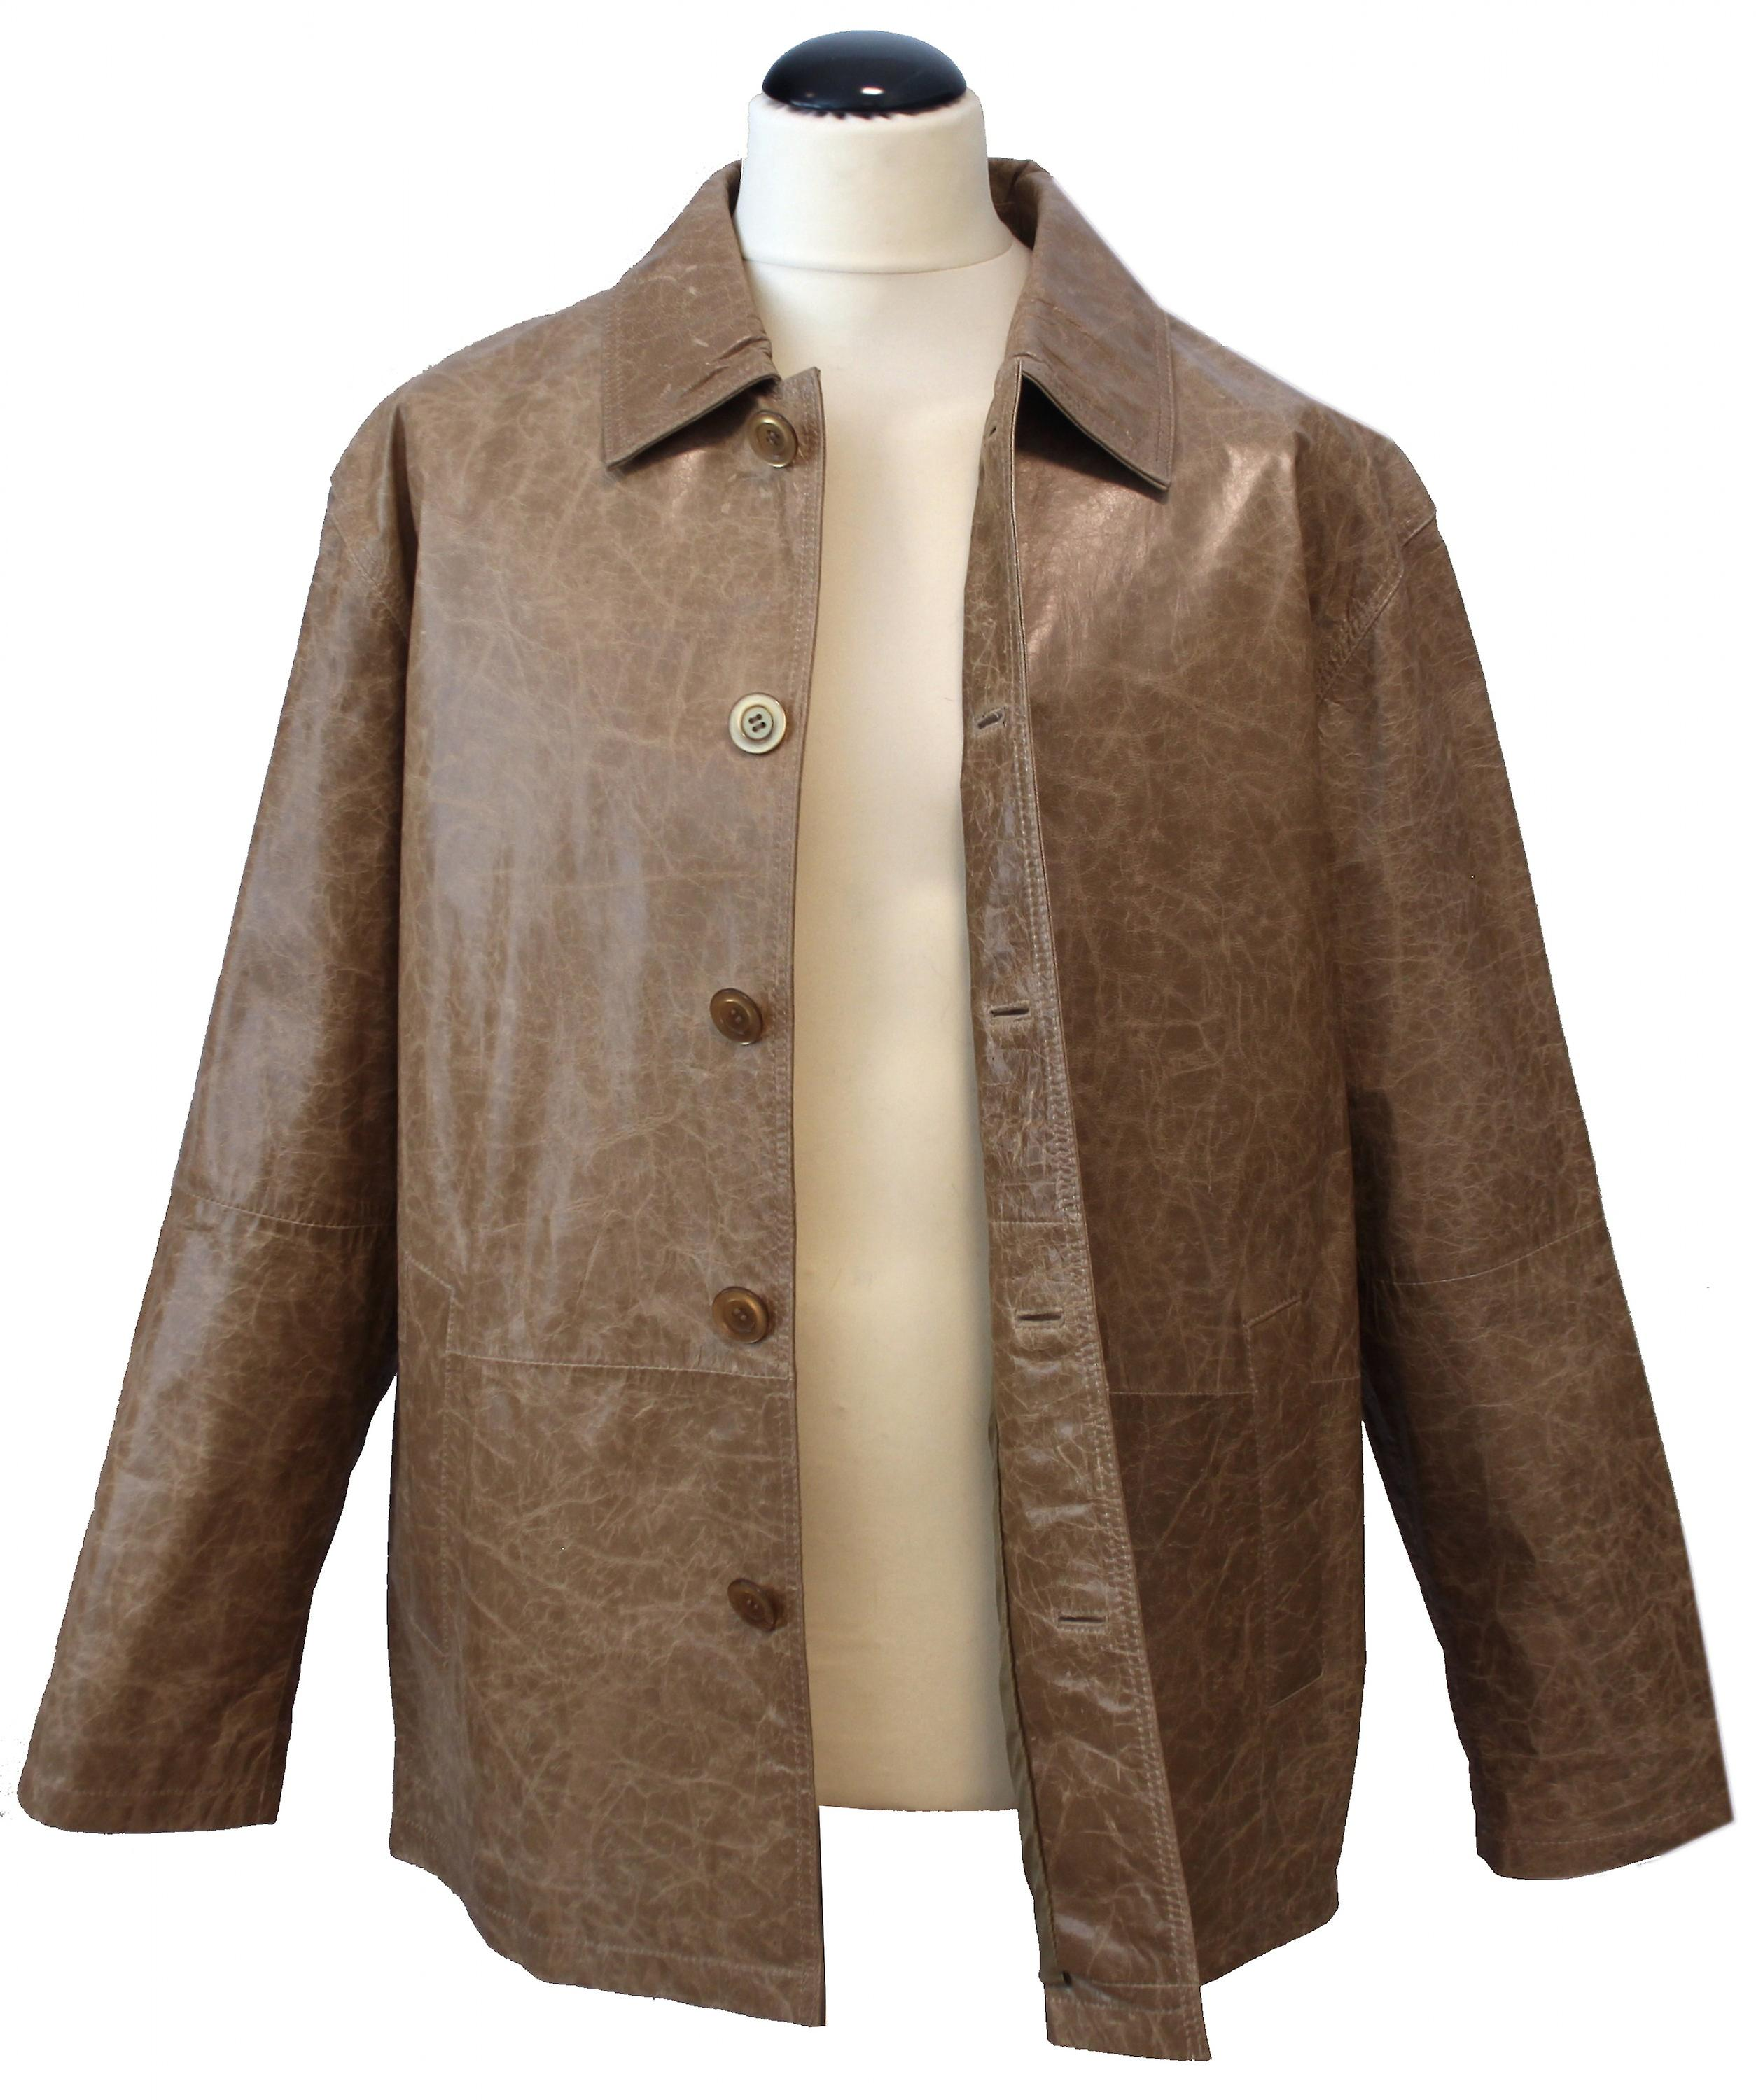 Curzio - leather jacket men's jacket waxed crushed leather comfort fit